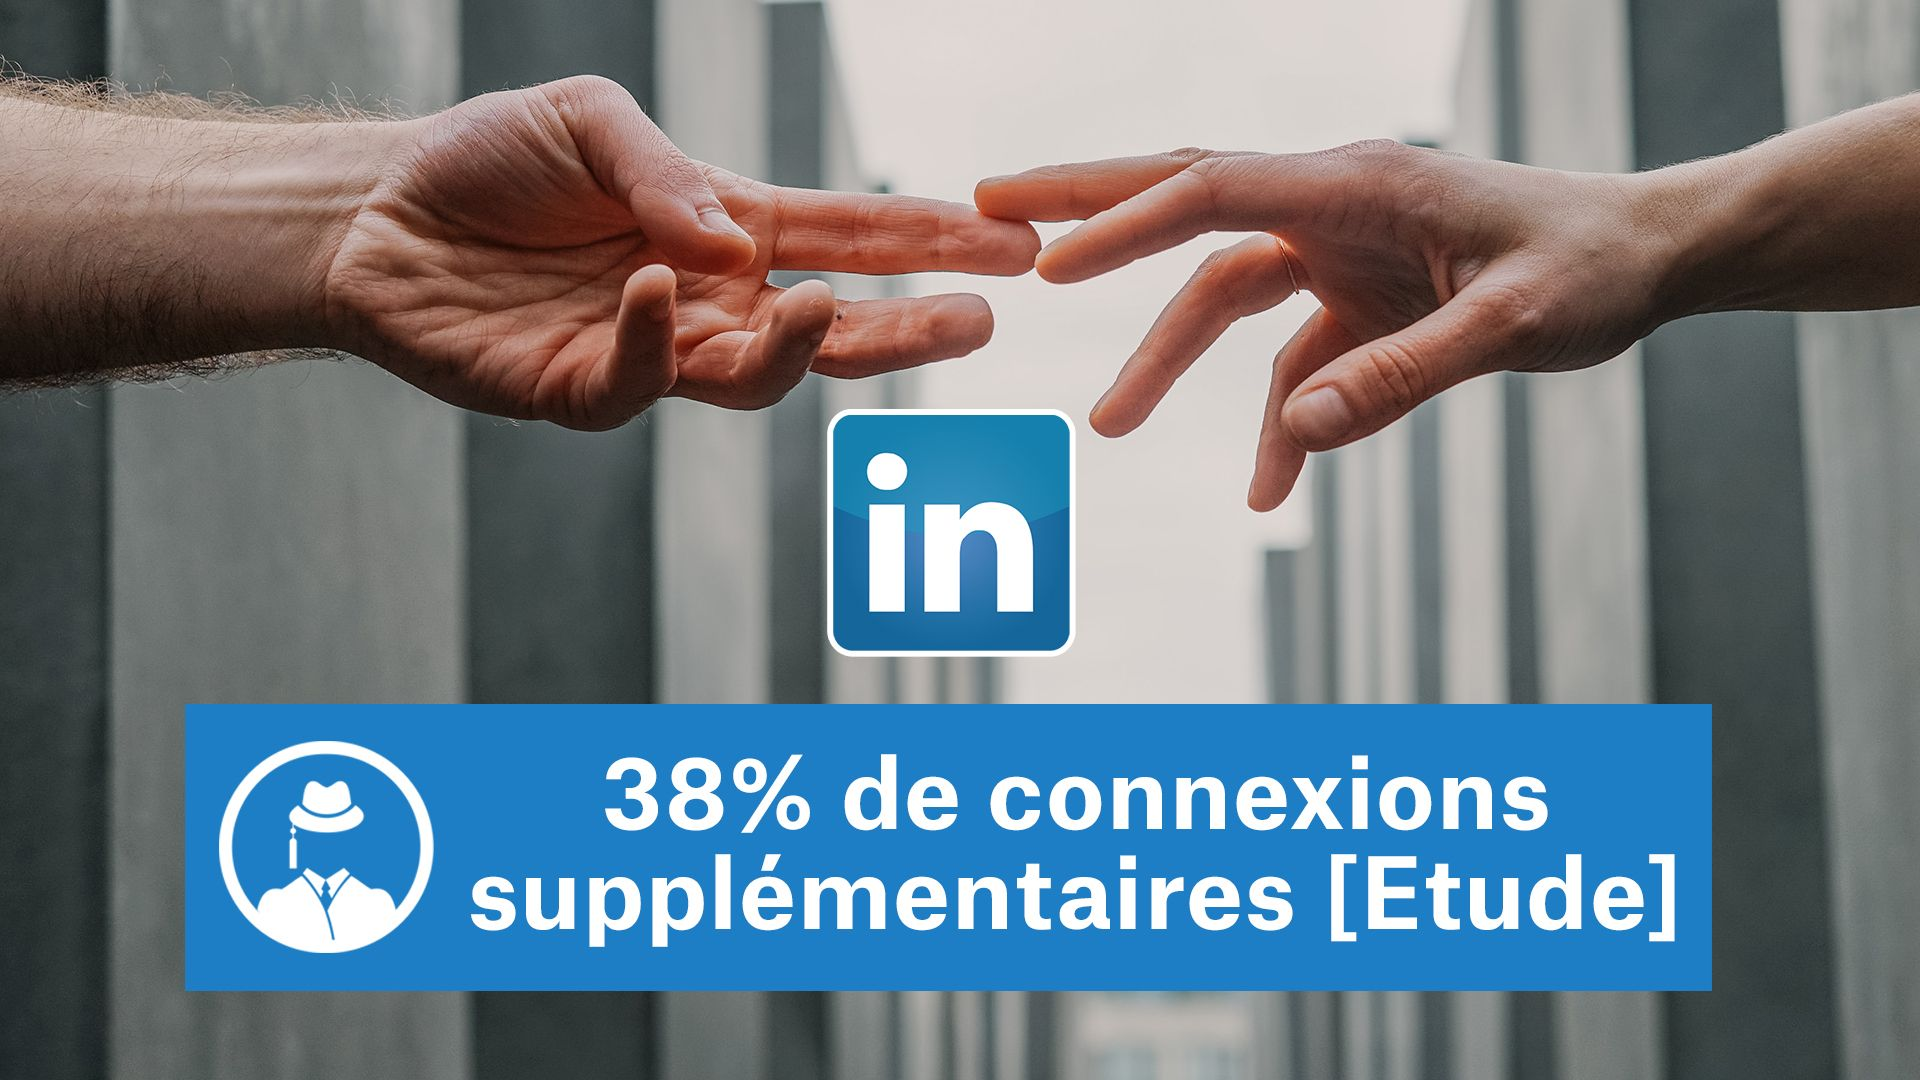 38% de connexions supplémentaires [Etude LinkedIn] #GrowthHacking #WebMarketing #FormationGrowthHacking #CentreDeFormationFrance #TunnelAARRR #AARRR #SocialMedia #CommunityManagement #SEO #MarketingDigital #SiteWeb #LinkedIn